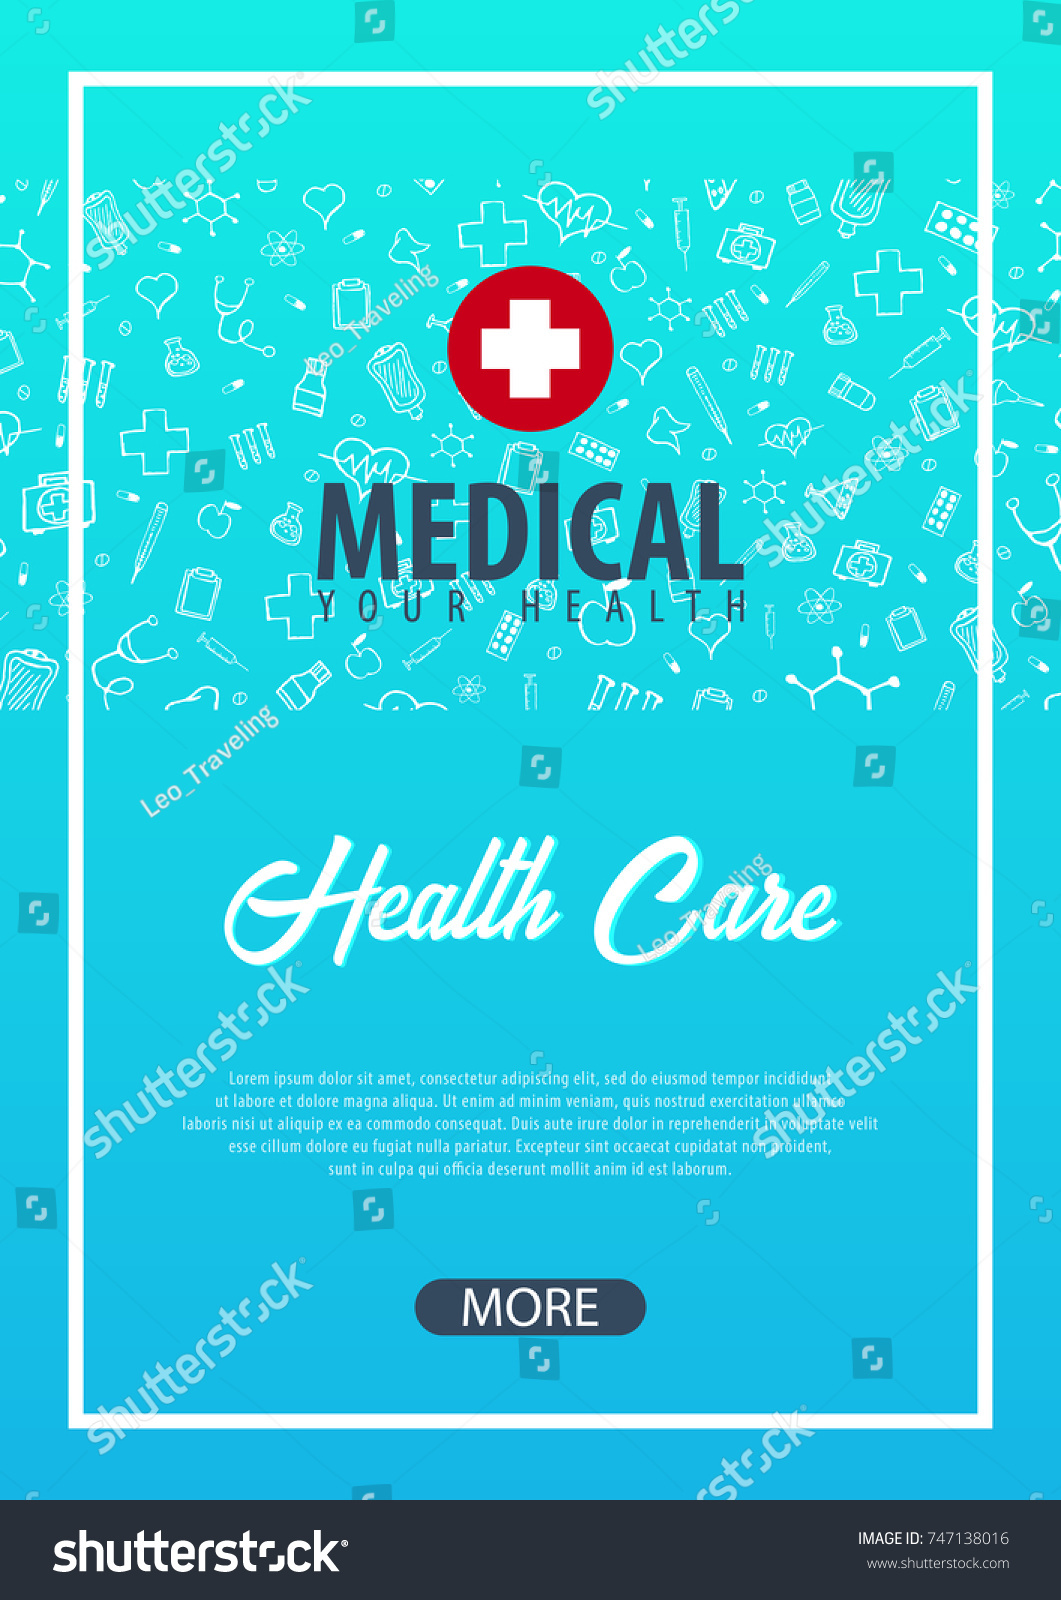 Medical background medical care health care stock photo photo medical background medical care health care vector medicine illustration stopboris Choice Image